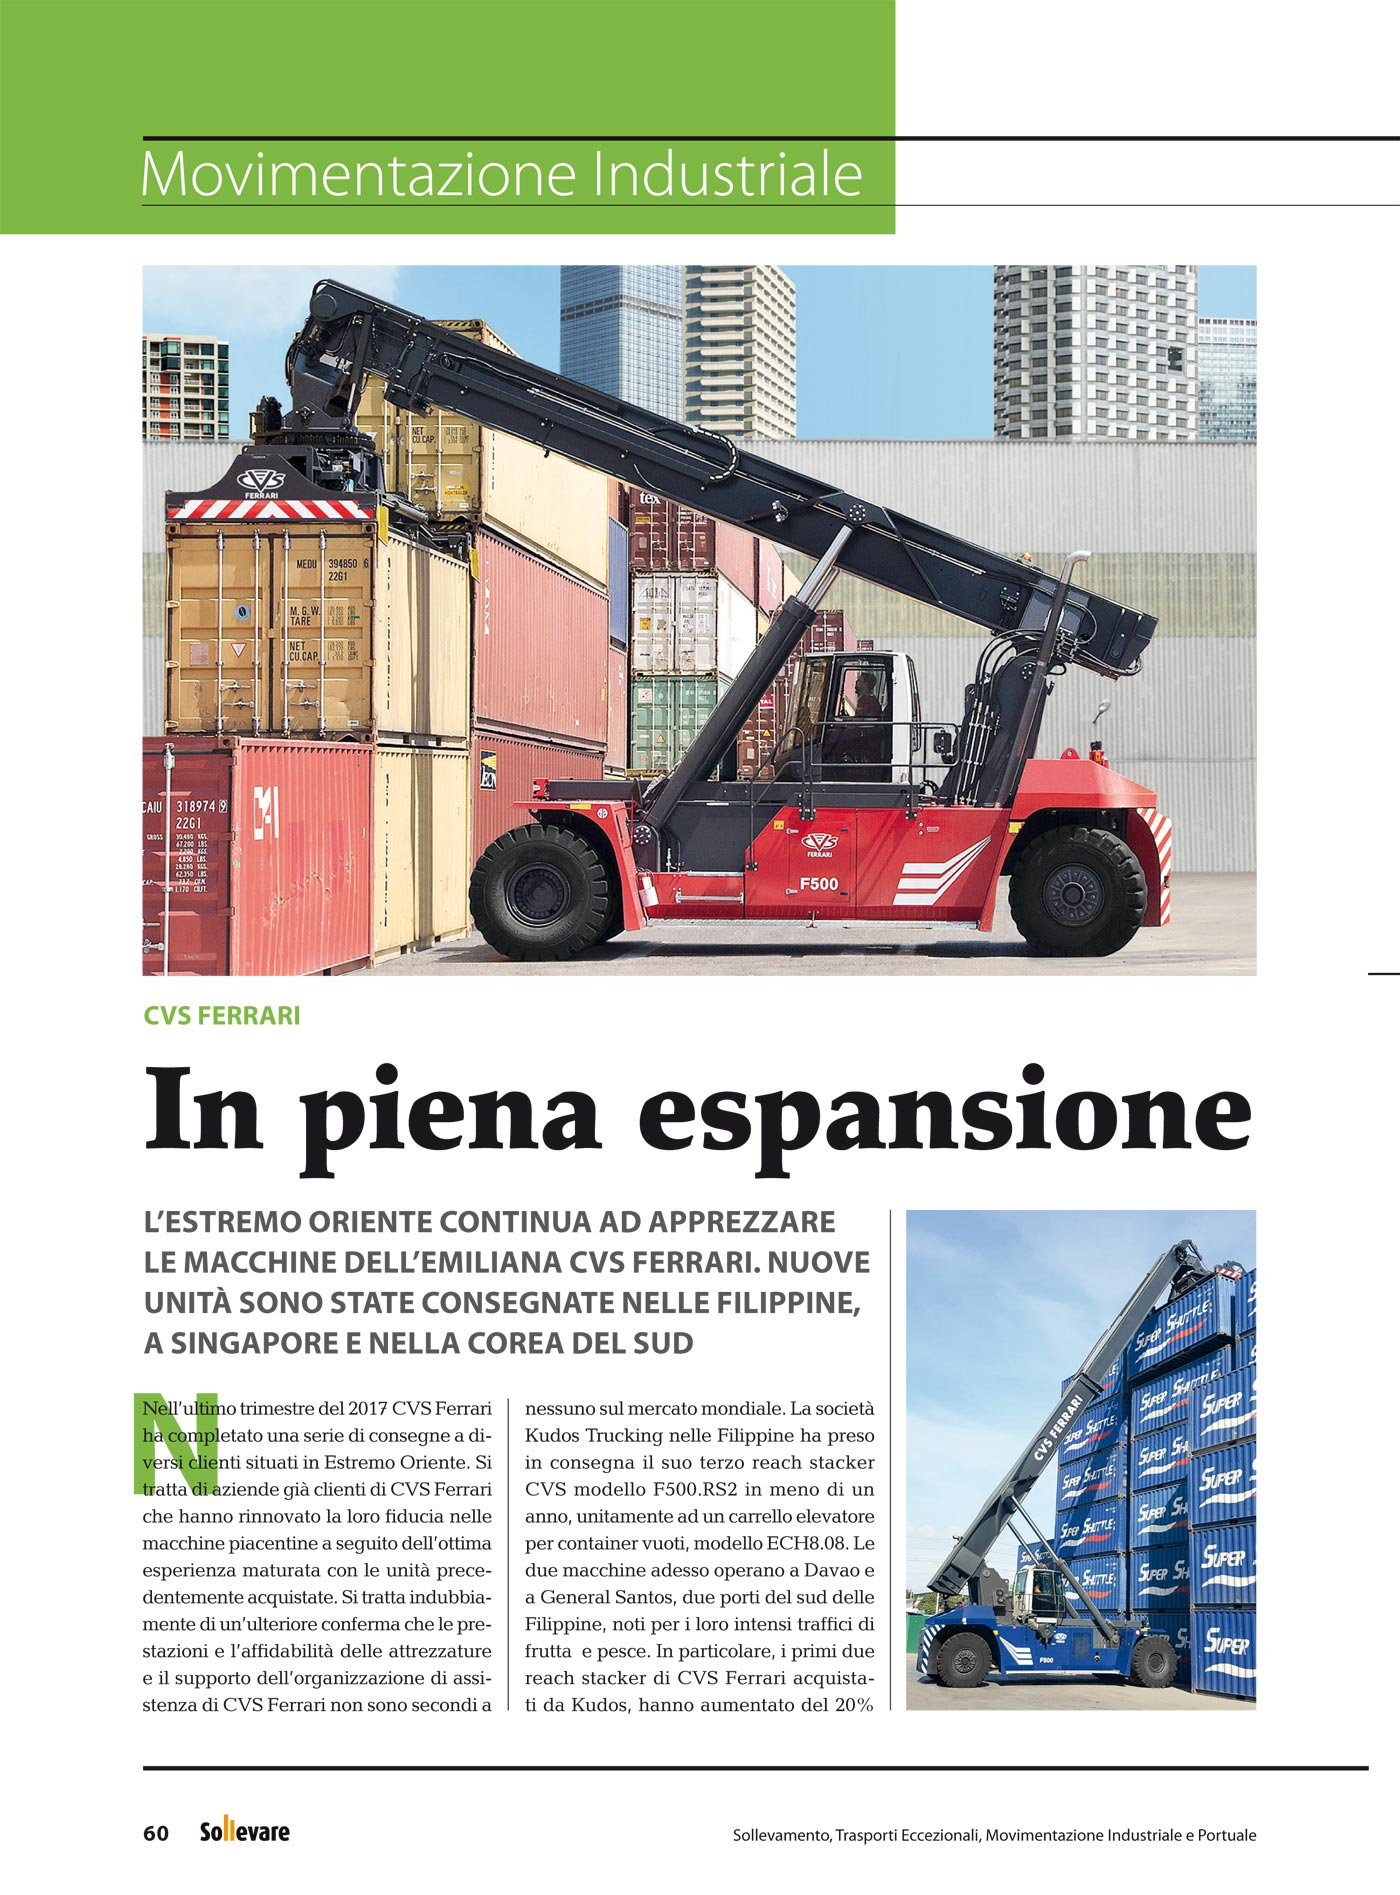 In the press - CVS ferrari sollevare april 2018